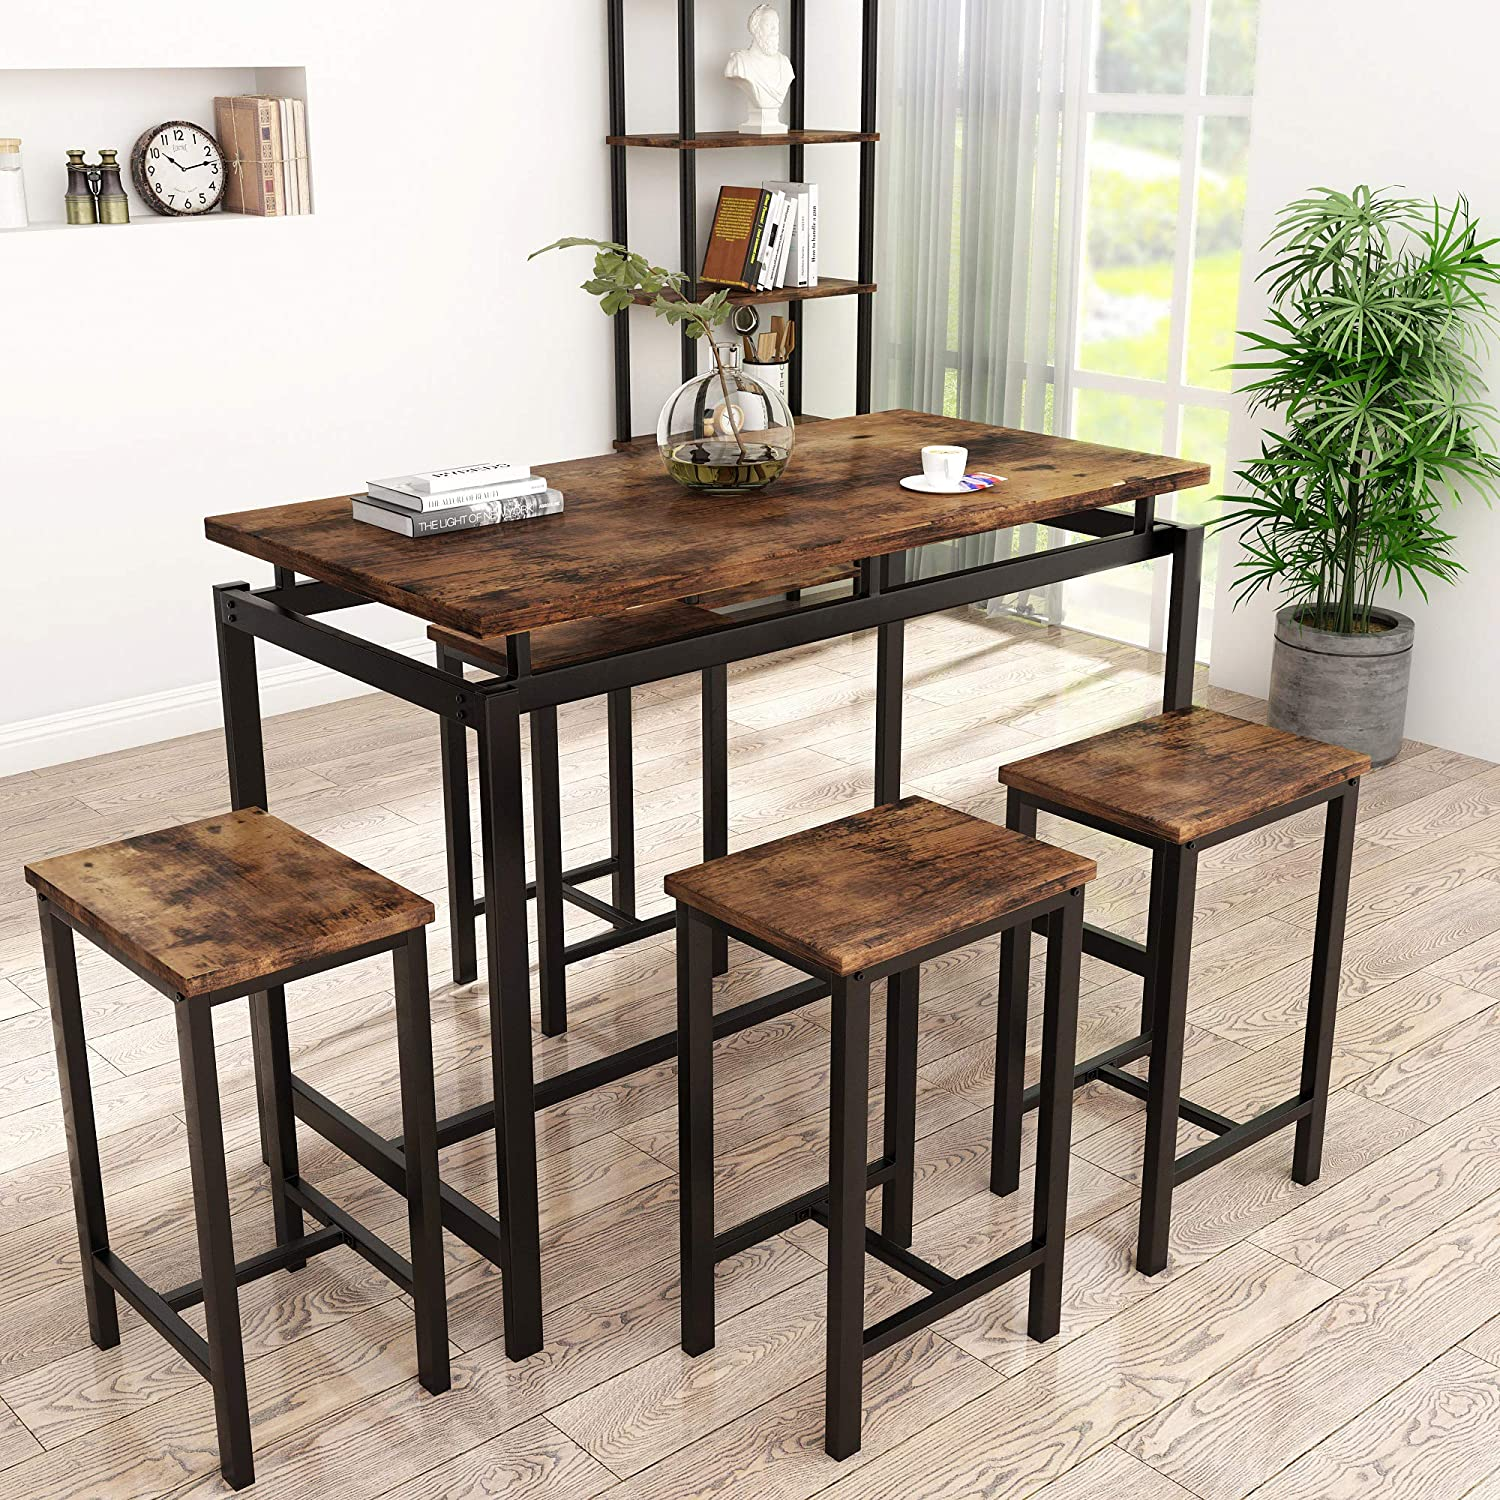 HCWORLD 5 Pieces Dining Set Kitchen and 4 Table Chairs Ba Cheap Large discharge sale super special price with